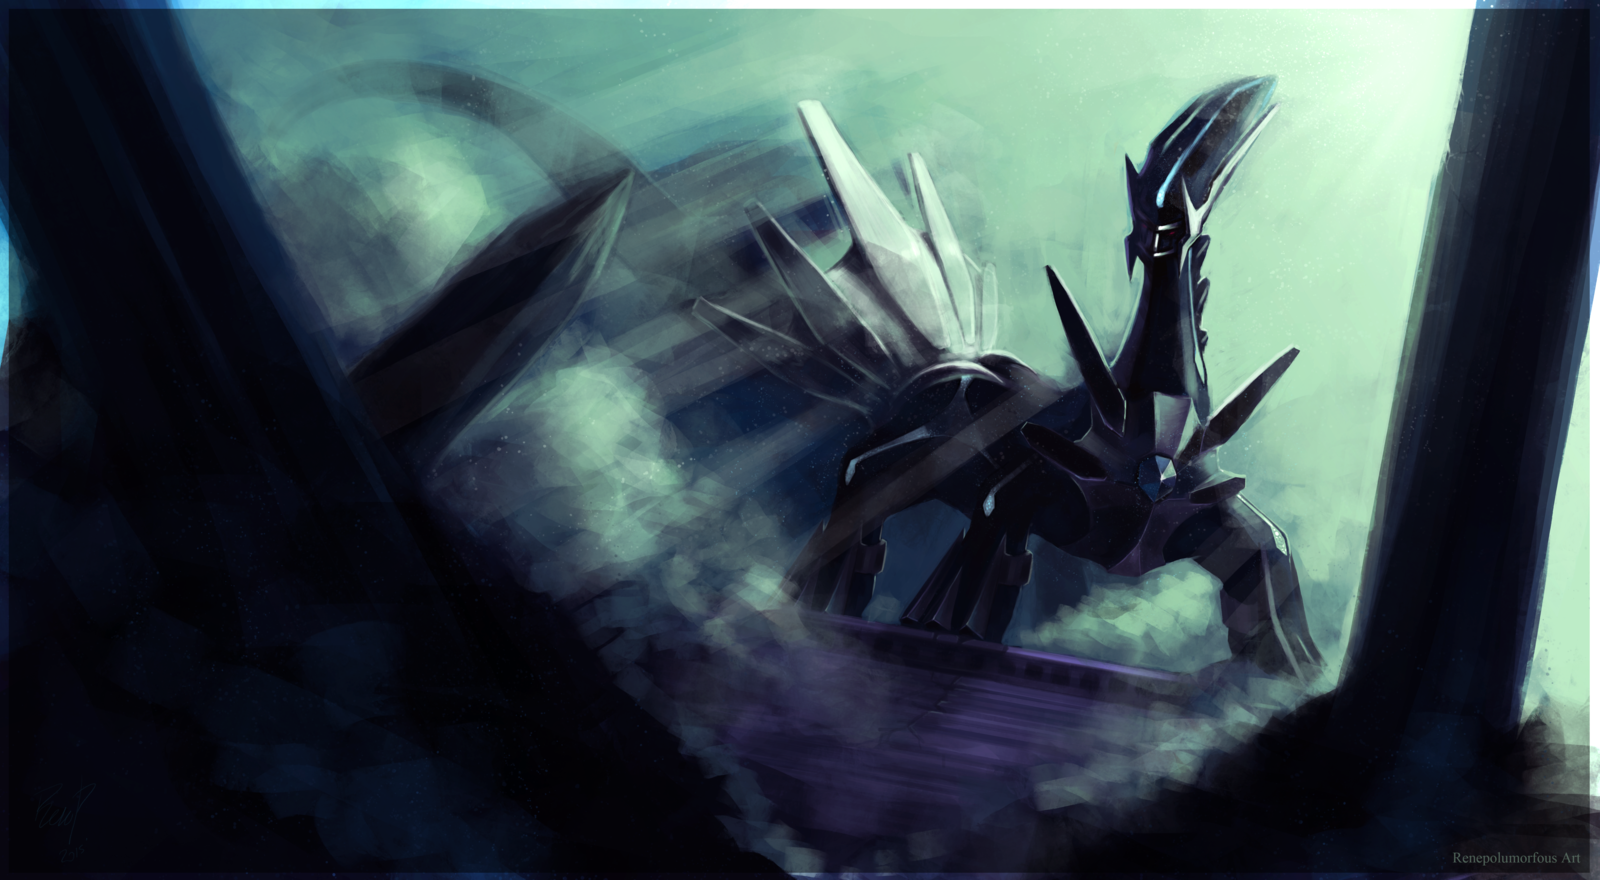 Pokémon Wallpaper and Background Image | 1600x880 | ID ... Xerneas Yveltal Zygarde Wallpaper